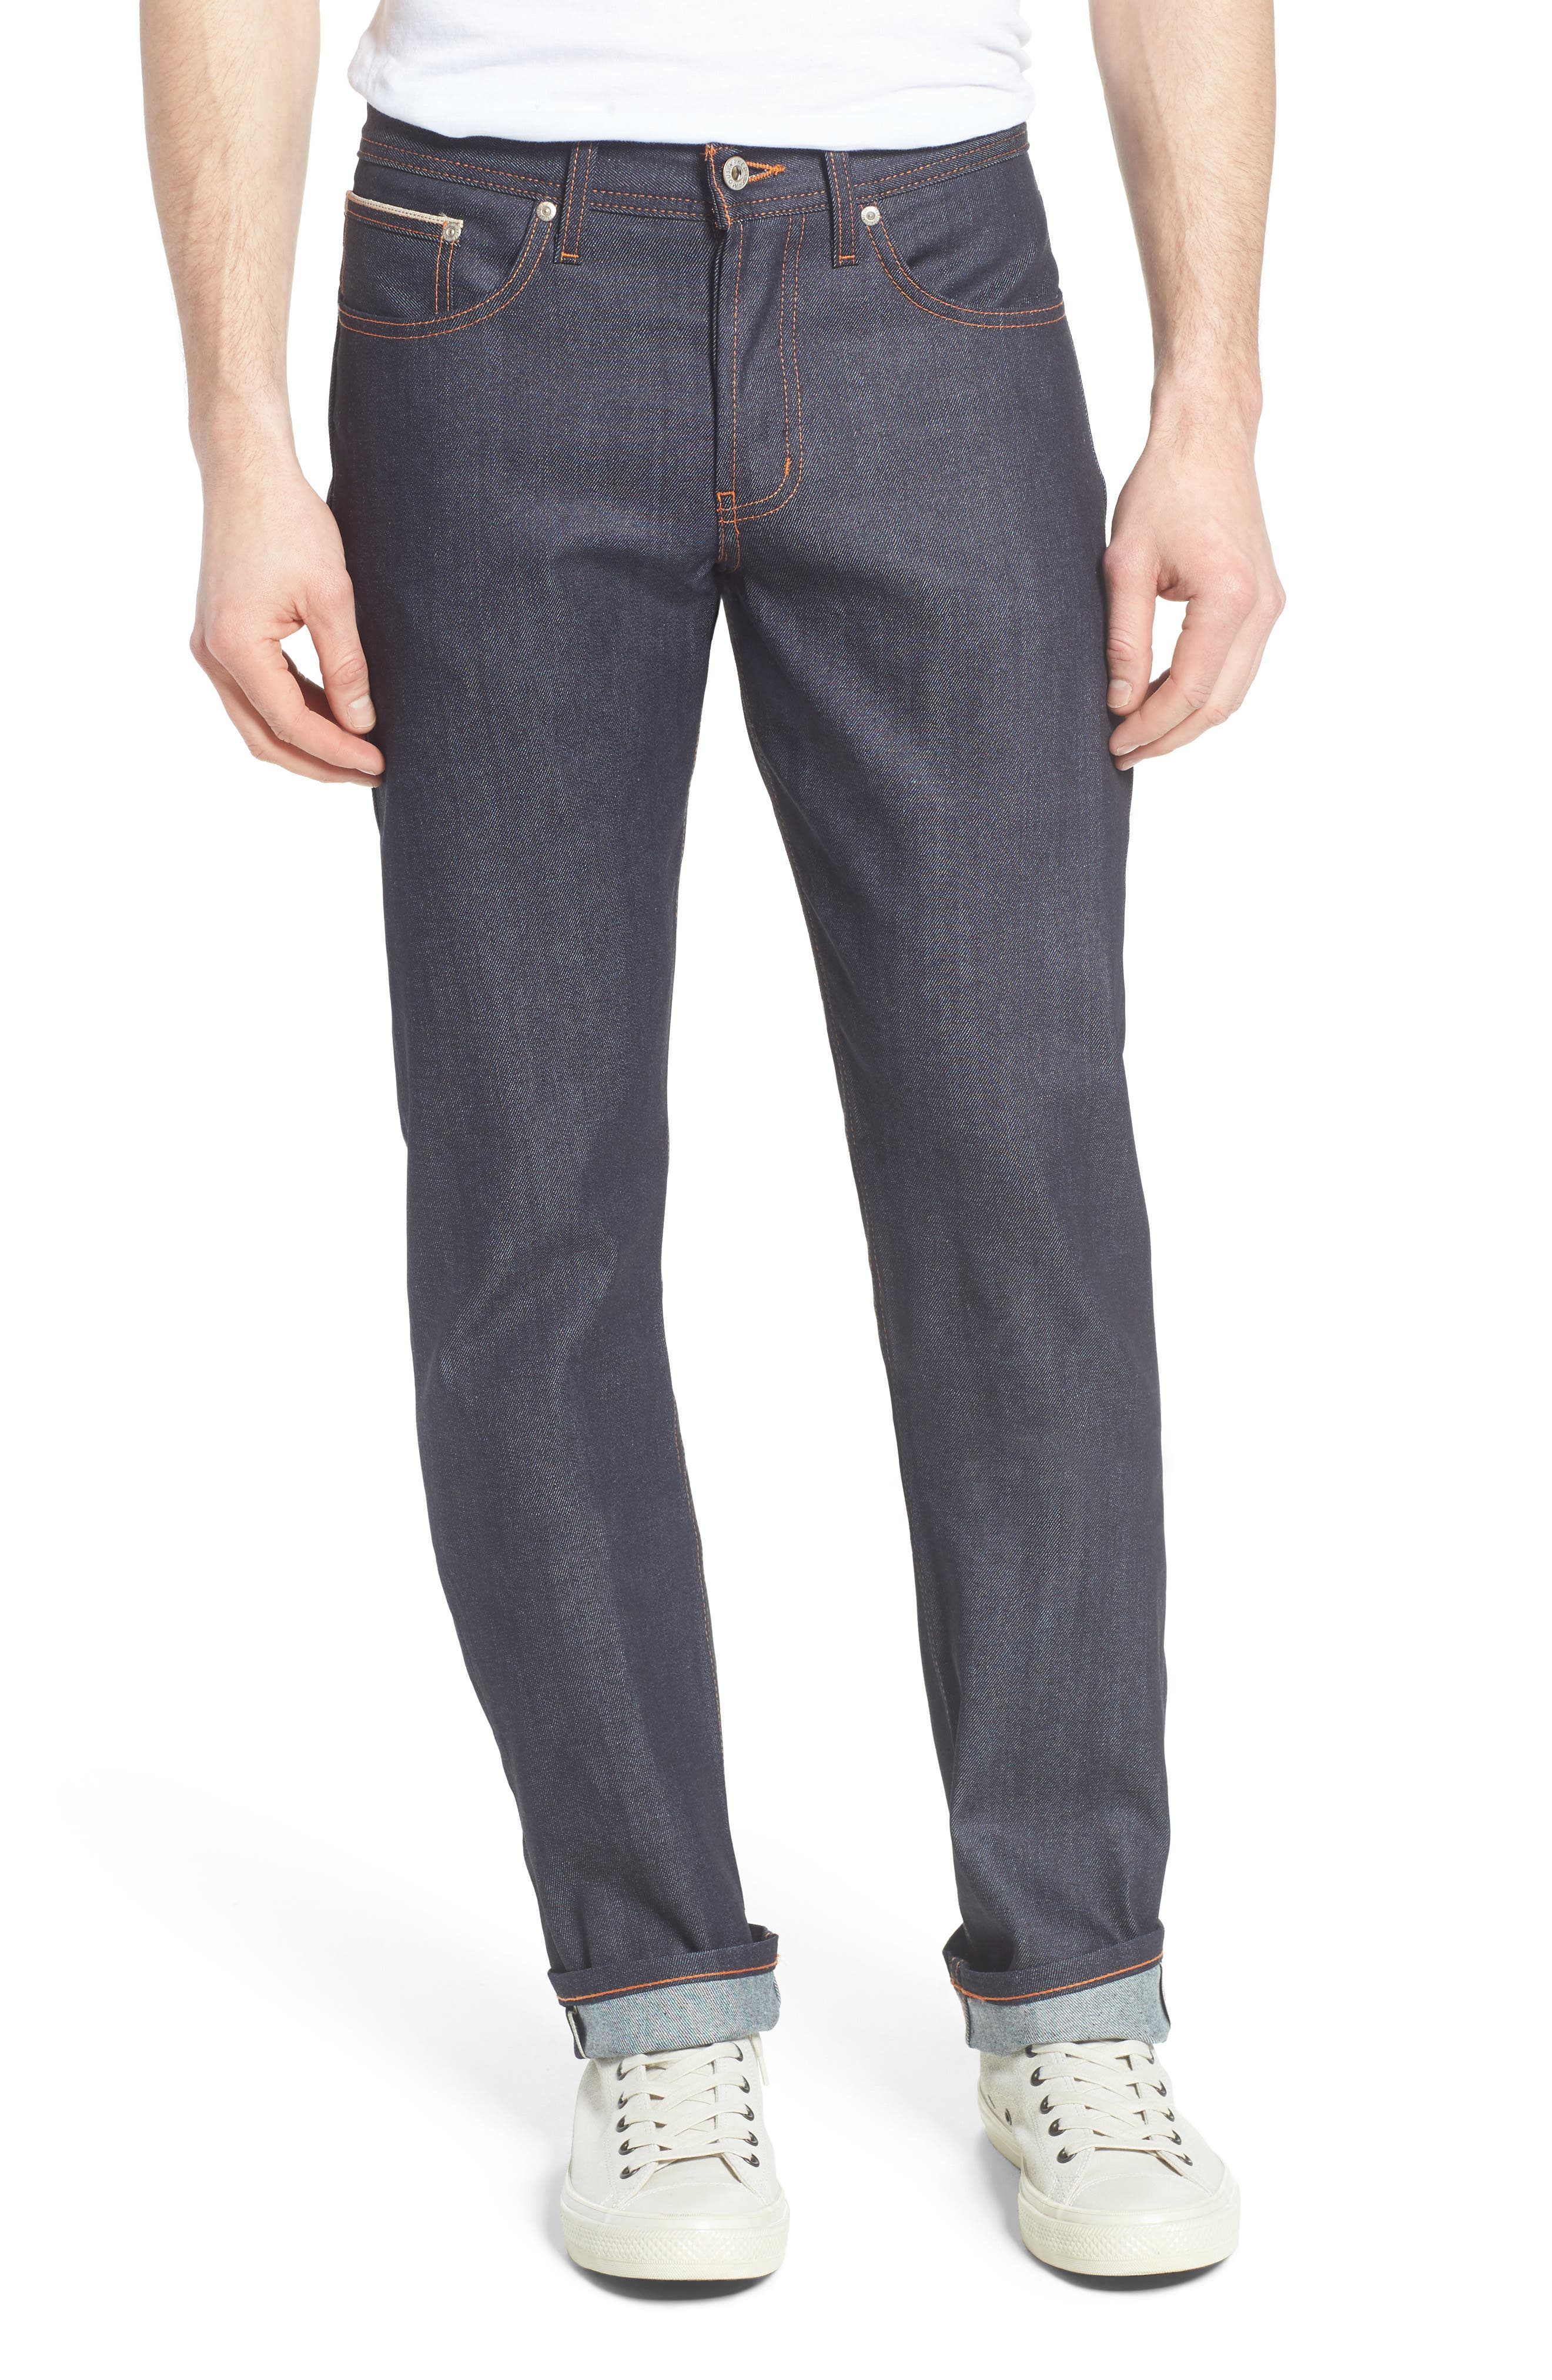 NAKED & FAMOUS DENIM Weird Guy 11 oz. Slim Fit Stretch Selvedge Jeans, Main, color, INDIGO